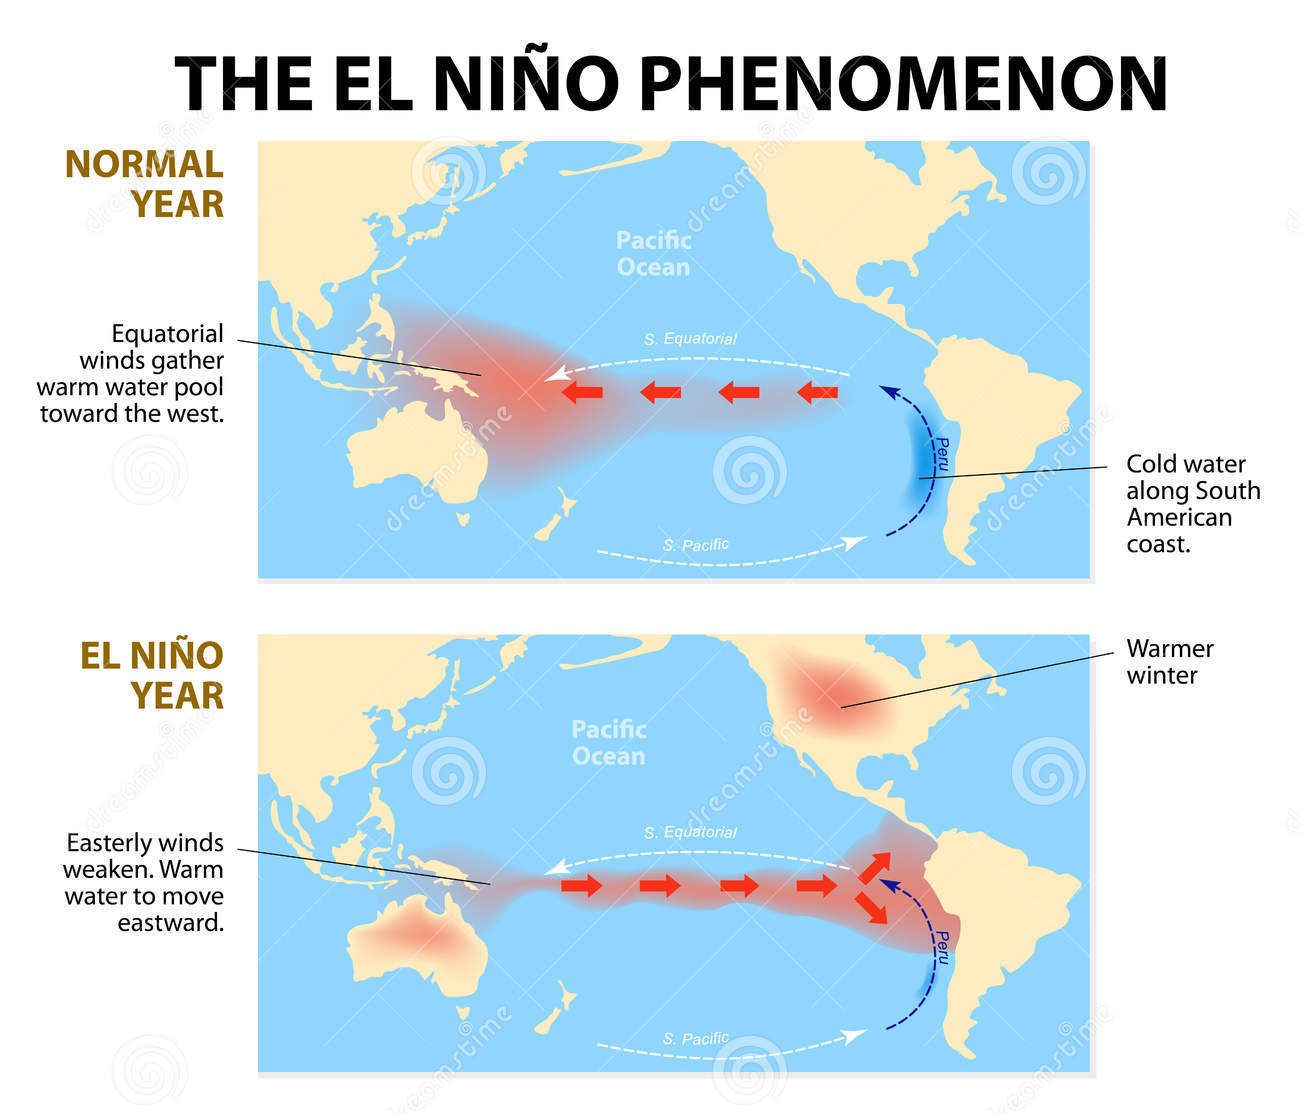 el-nino-phenomenon-diagram-shows-nio-disruption-ocean-atmosphere-system-pacific-ocean-having-36243049